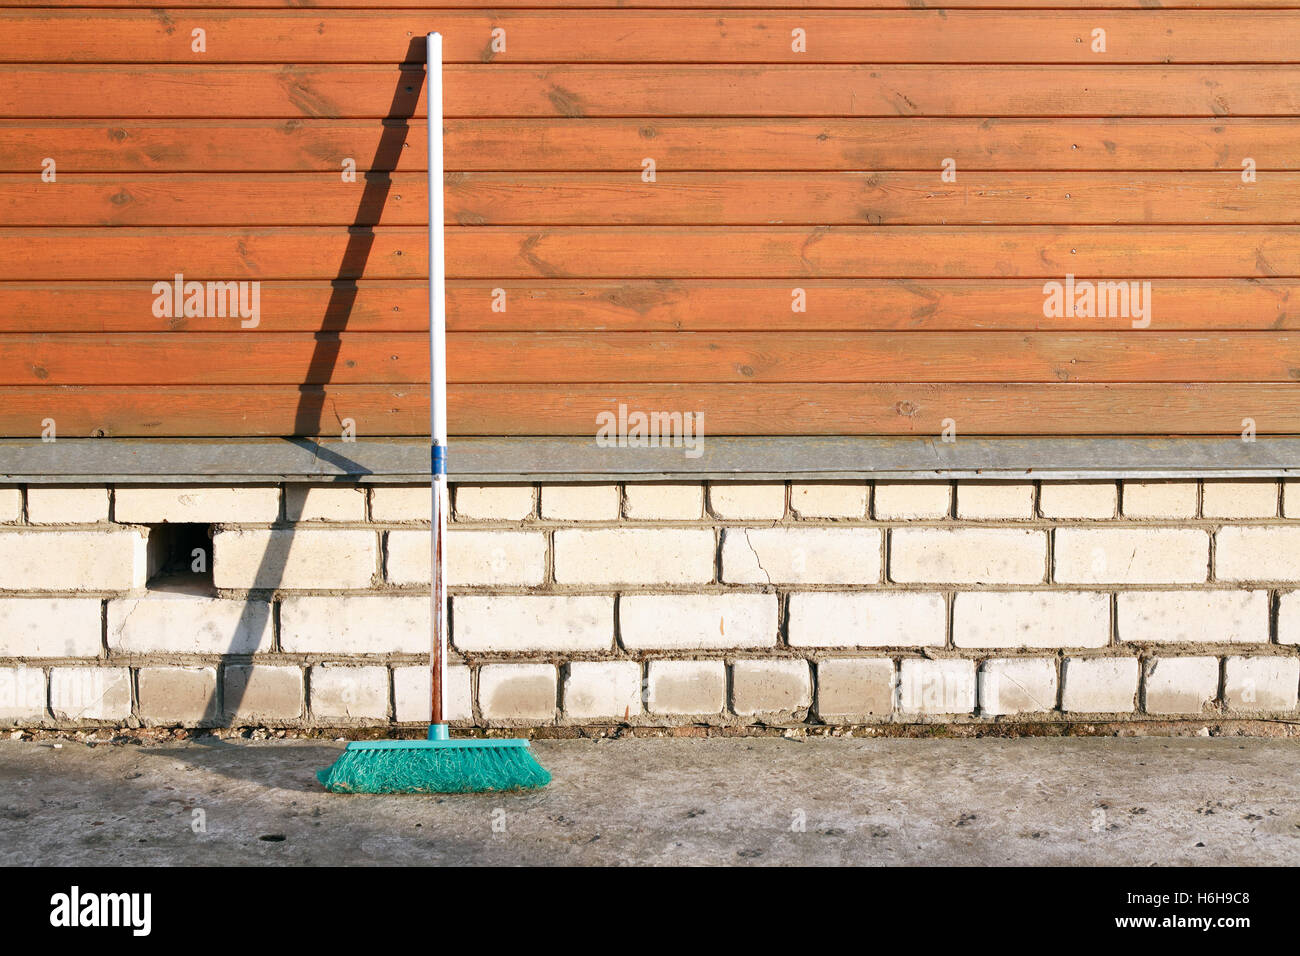 Old mop near wooden wall of house with shadow - Stock Image